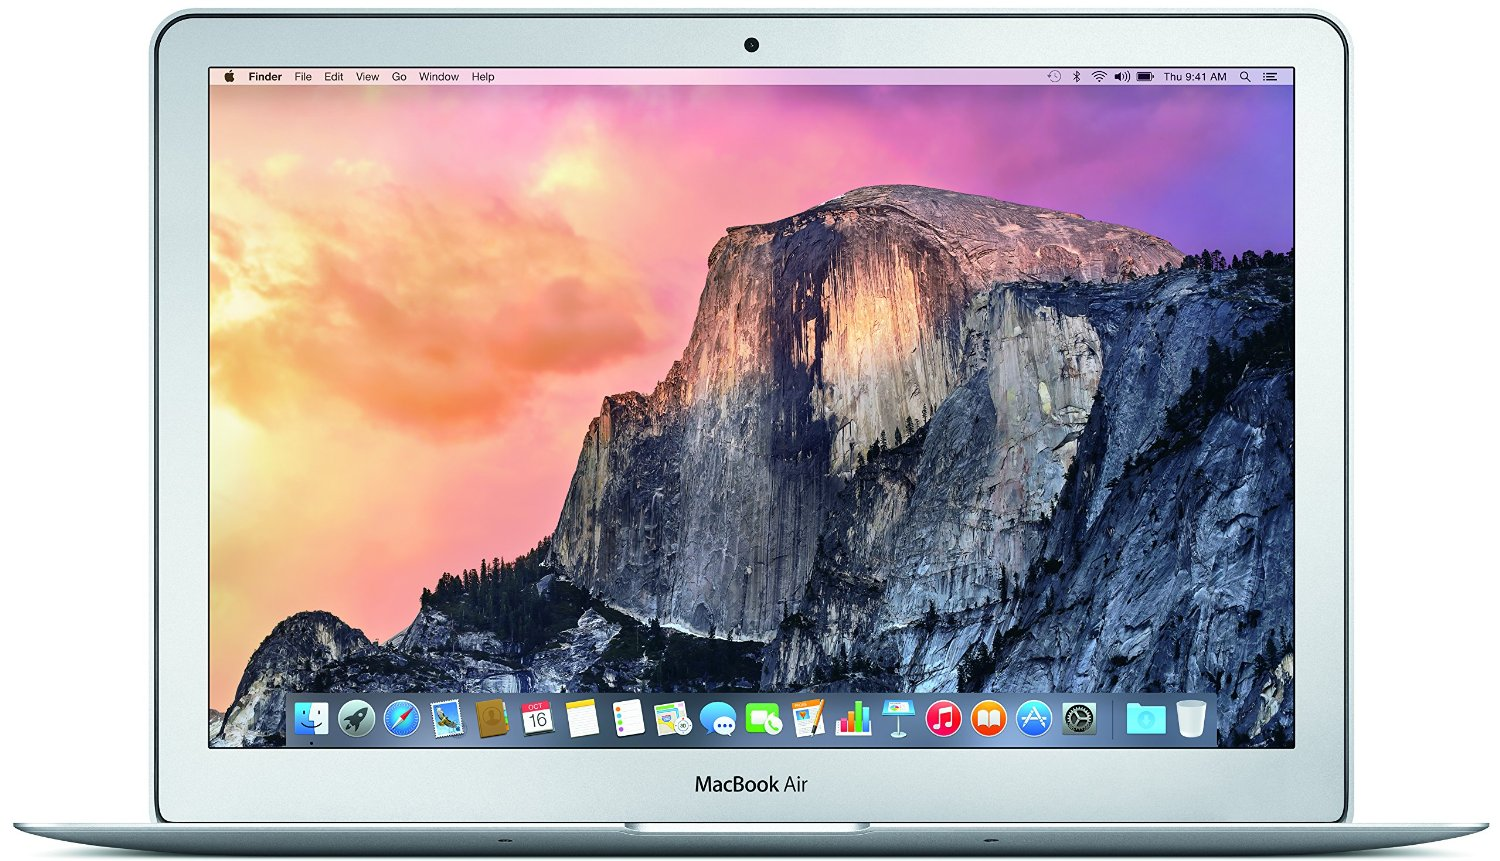 Apple MacBook Air MJVE2LL:A 13.3-Inch Laptop (128 GB) newest version